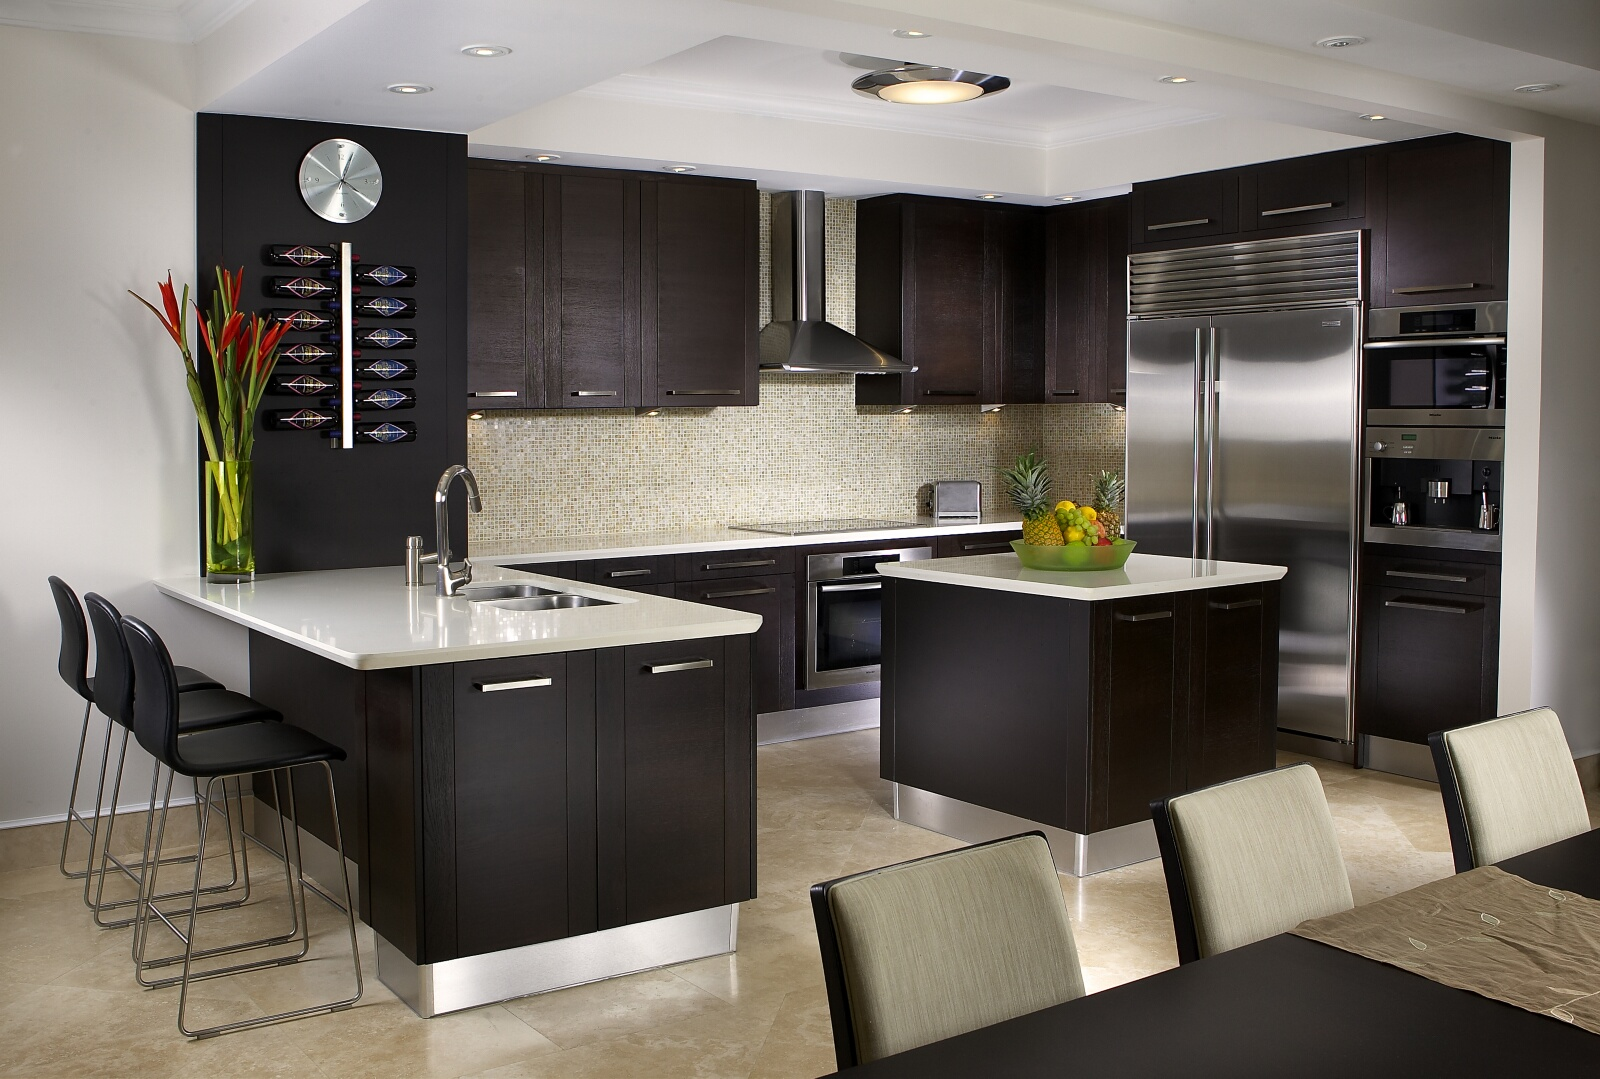 Kitchen interior design services miami florida for Kitchen designs pictures